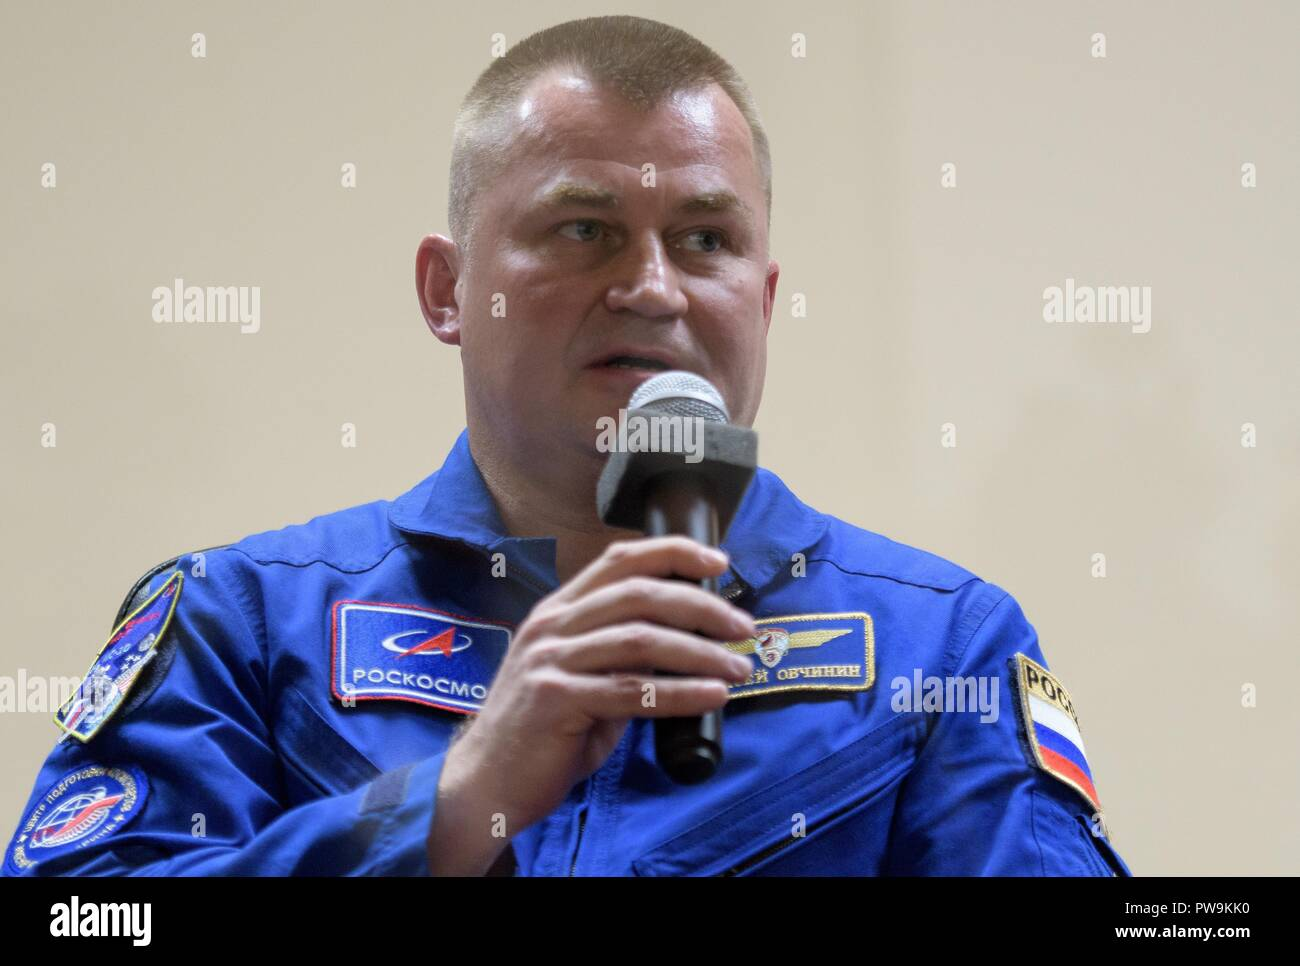 International Space Station Expedition 57 Flight Engineer Alexey Ovchinin of Roscosmos, during a press conference from isolation at the Cosmonauts Hotel October 10, 2018 in Baikonur, Kazakhstan. - Stock Image